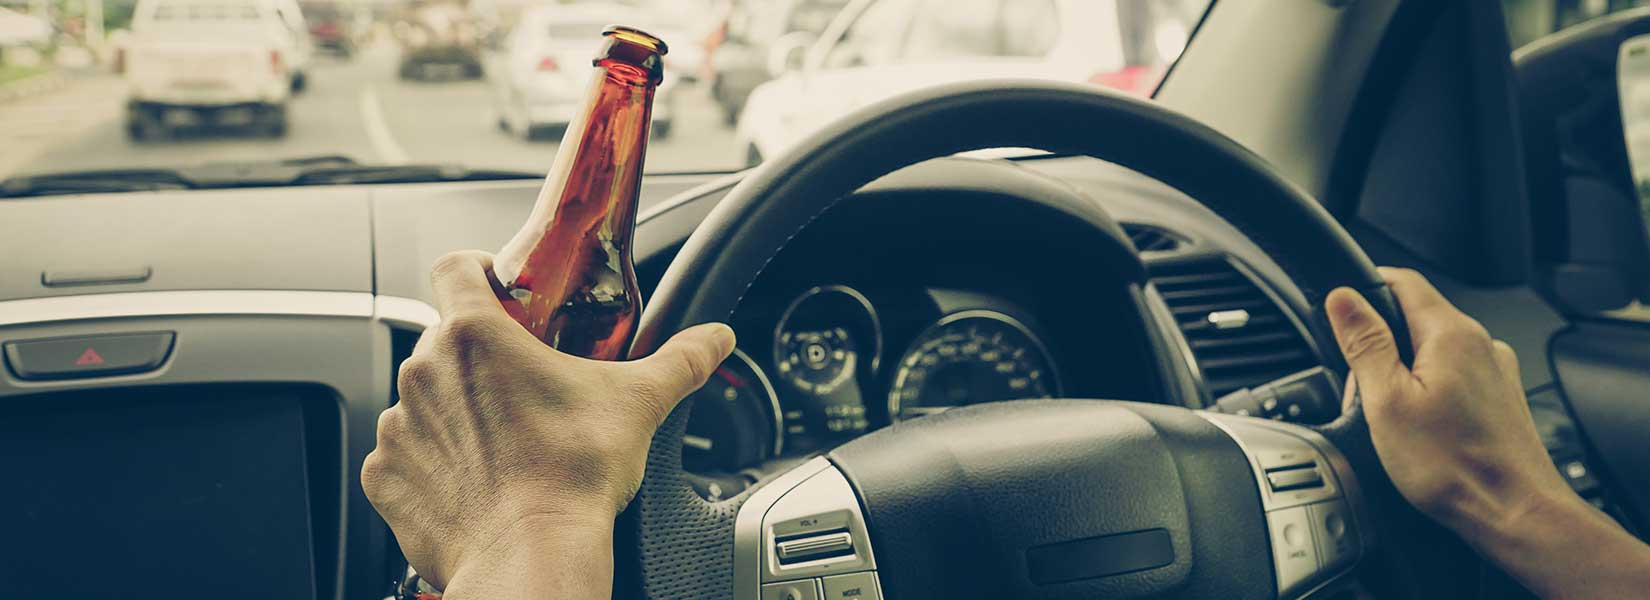 Why Drunk Driving Consequences Don't Stop Alcohol Abusers